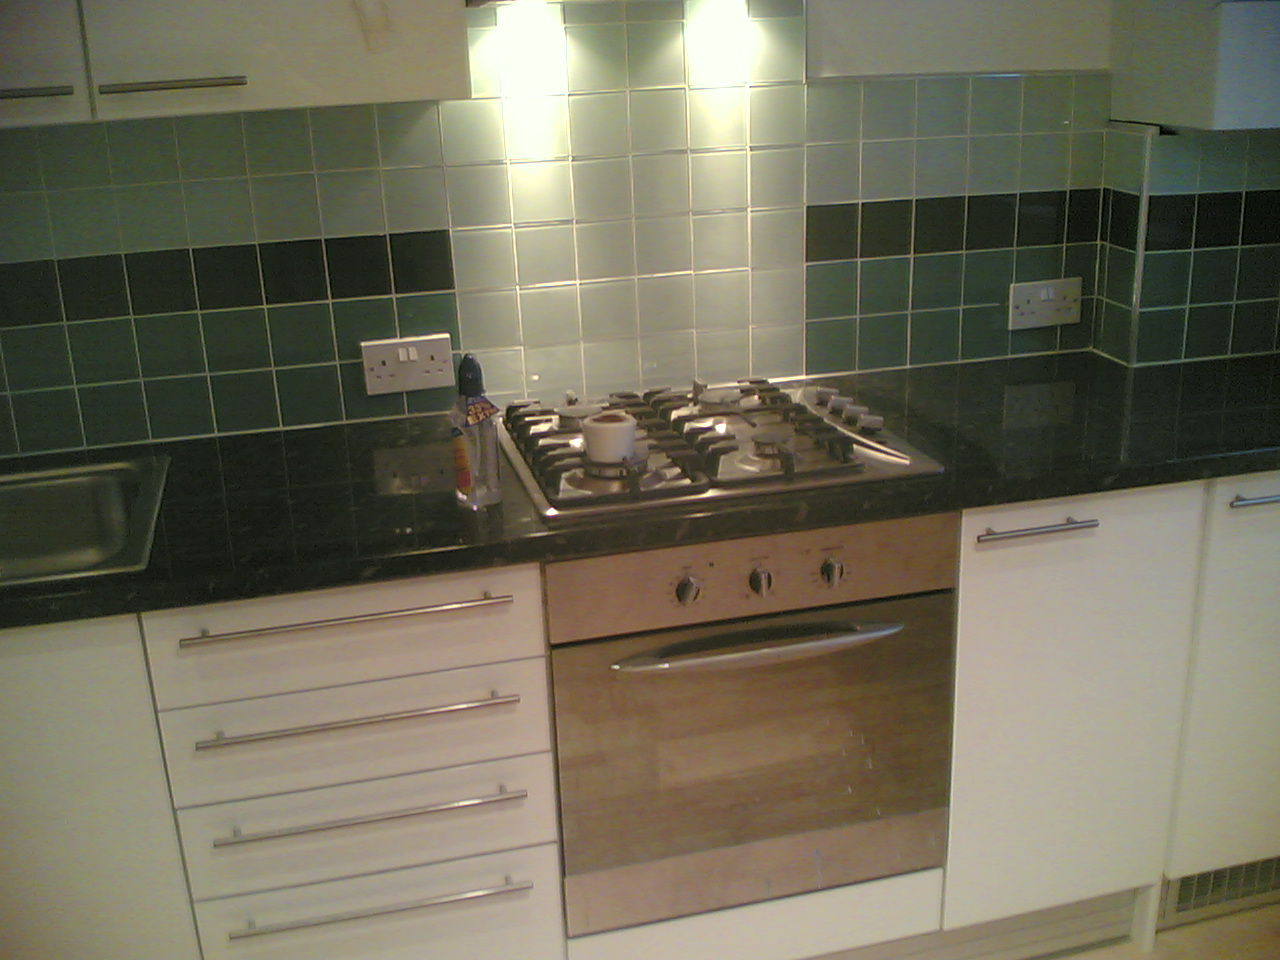 and after:-) simple tiling to show you how would it look like before and after:-)